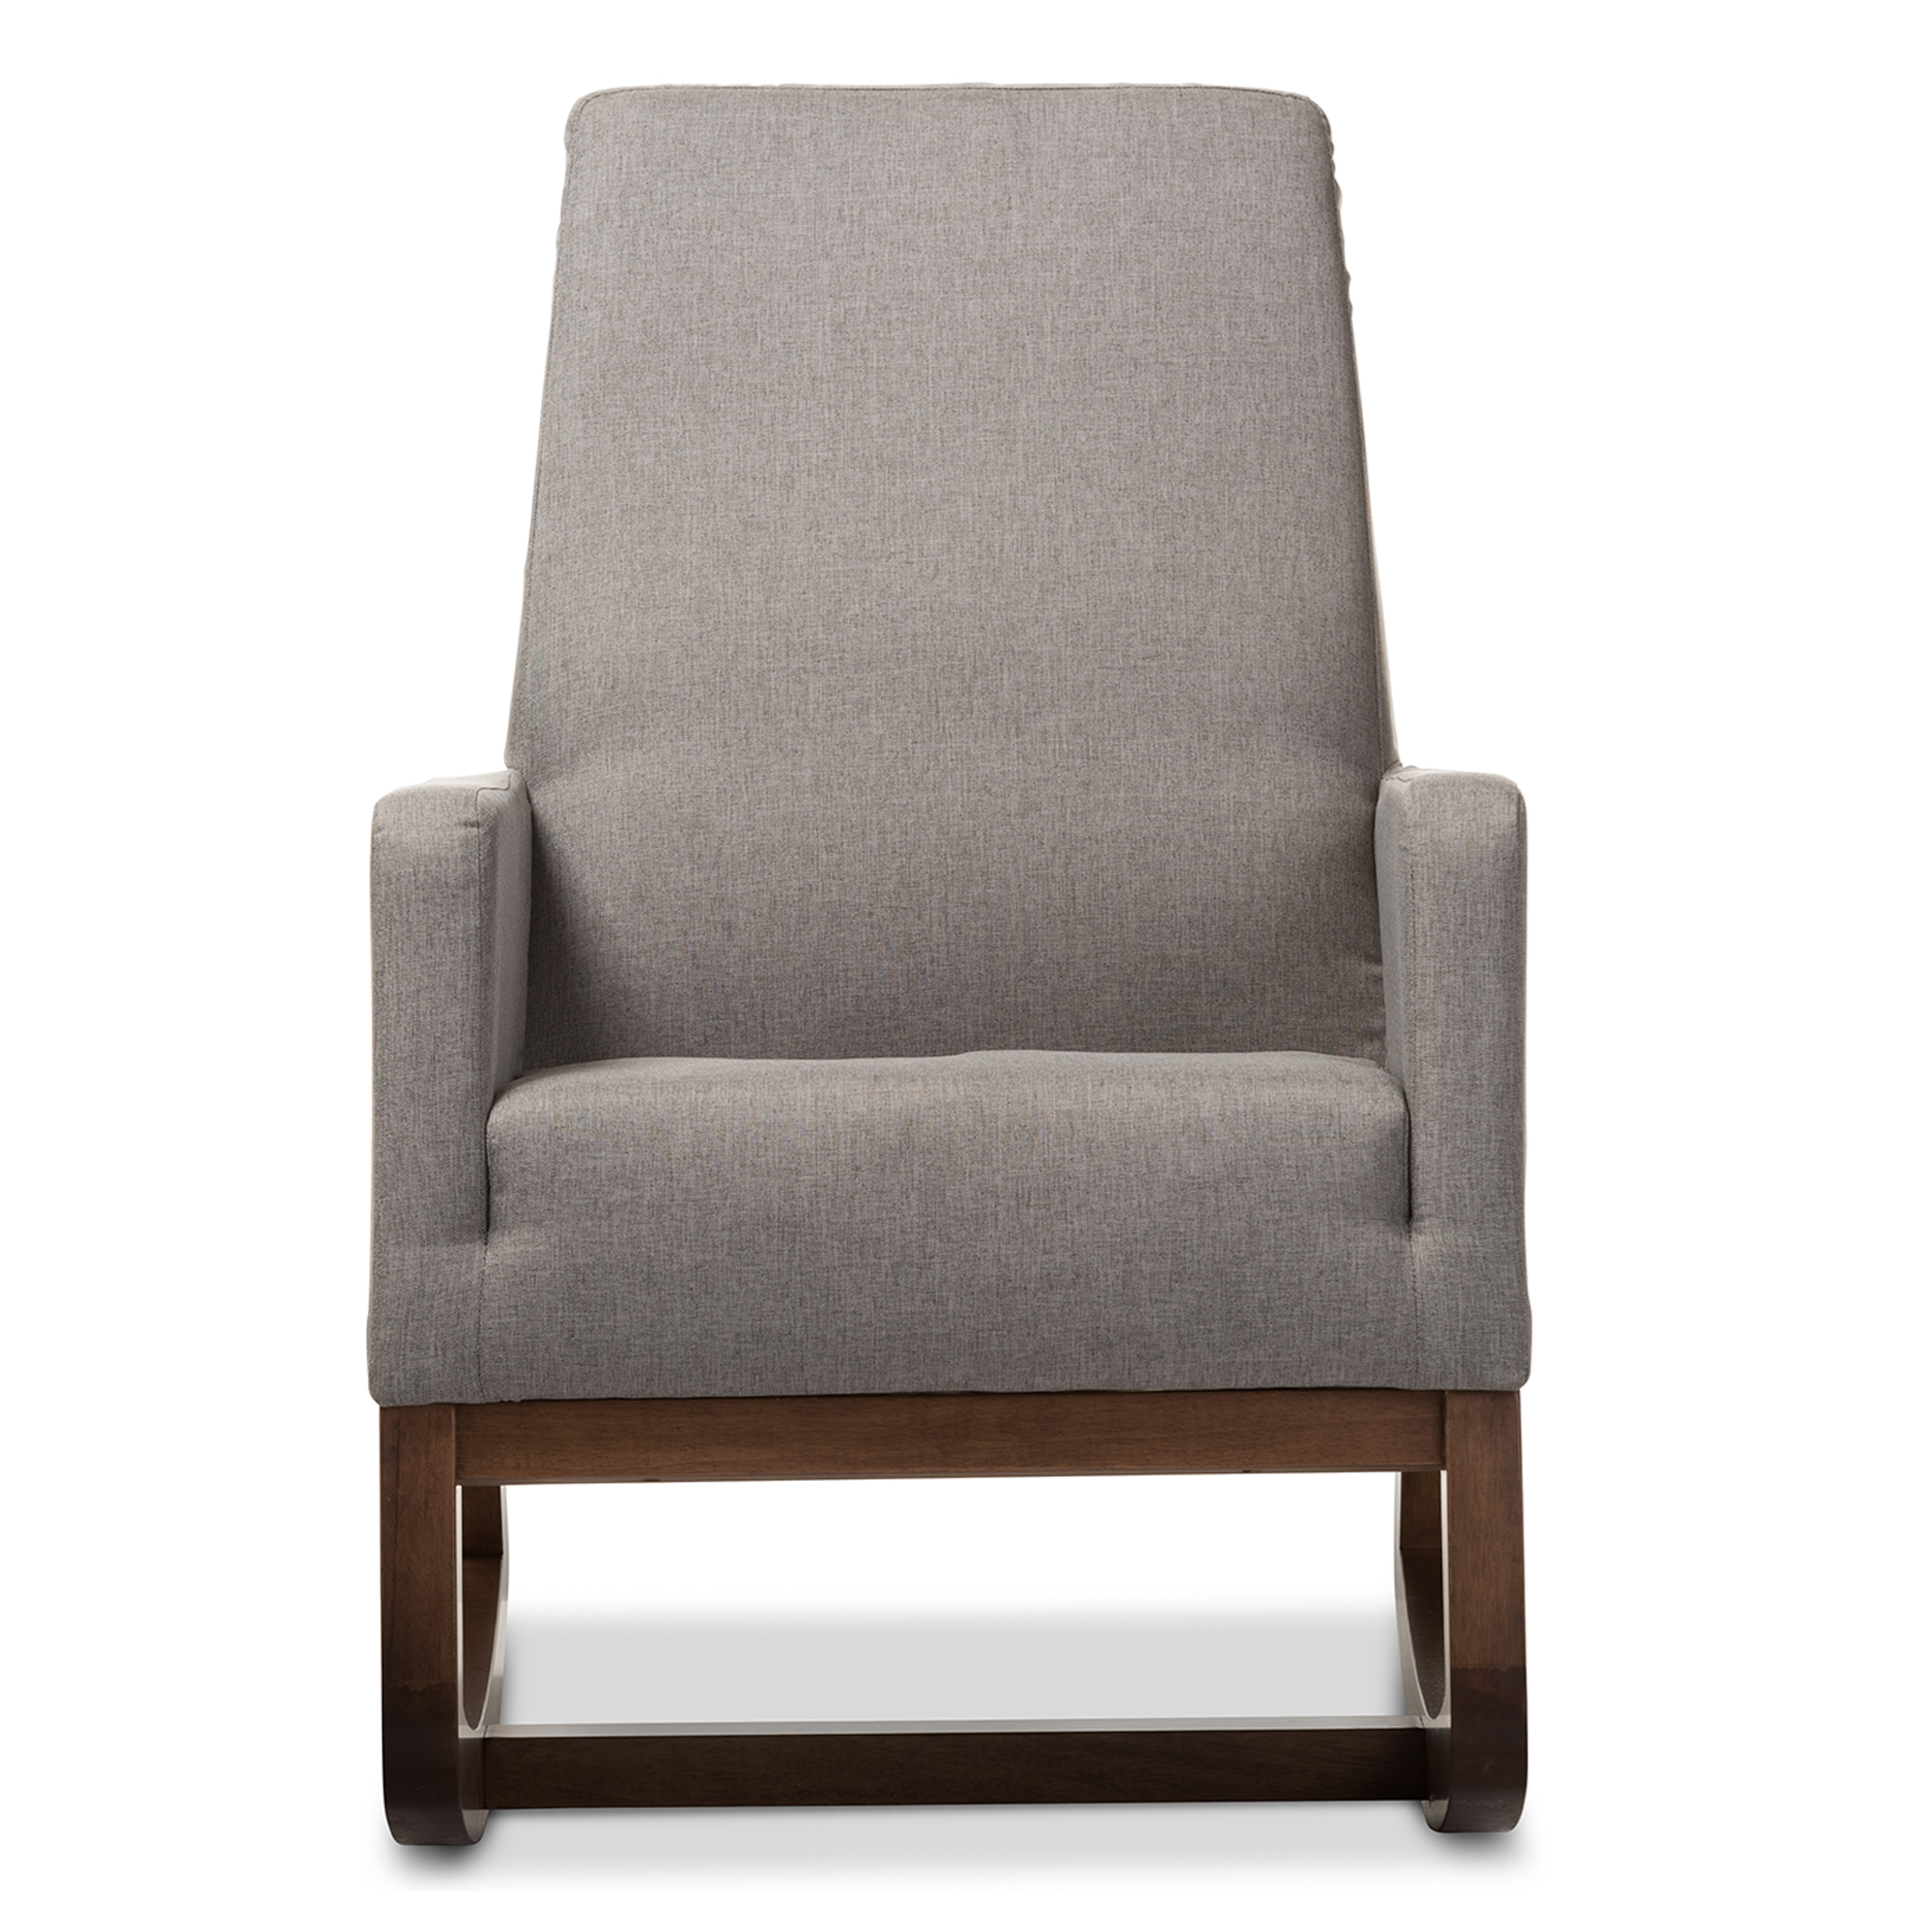 concept popular sxs baby rocking for mother antique of chair cushioned amazing upholstered in furniture and